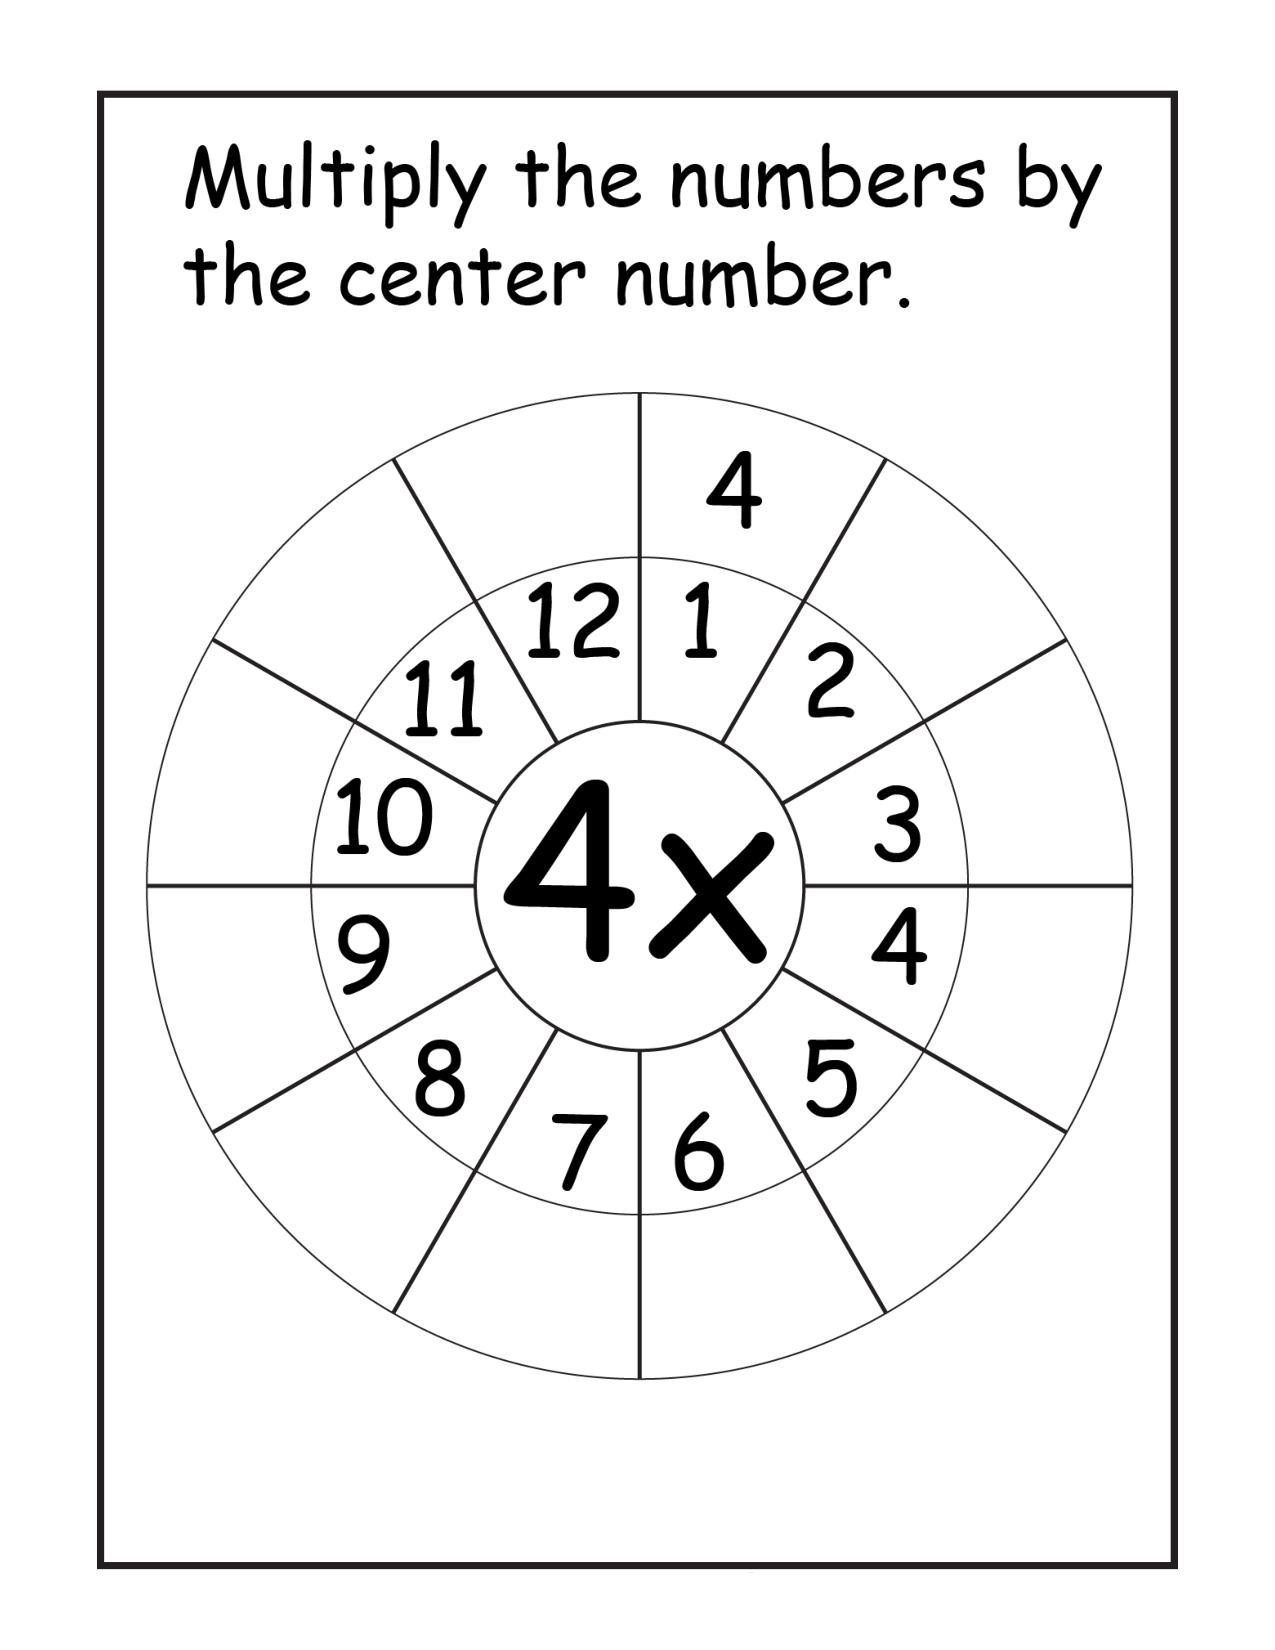 Saxon Math Worksheets 5th Grade Multiplication Worksheets Times Tables Speed Test Printable